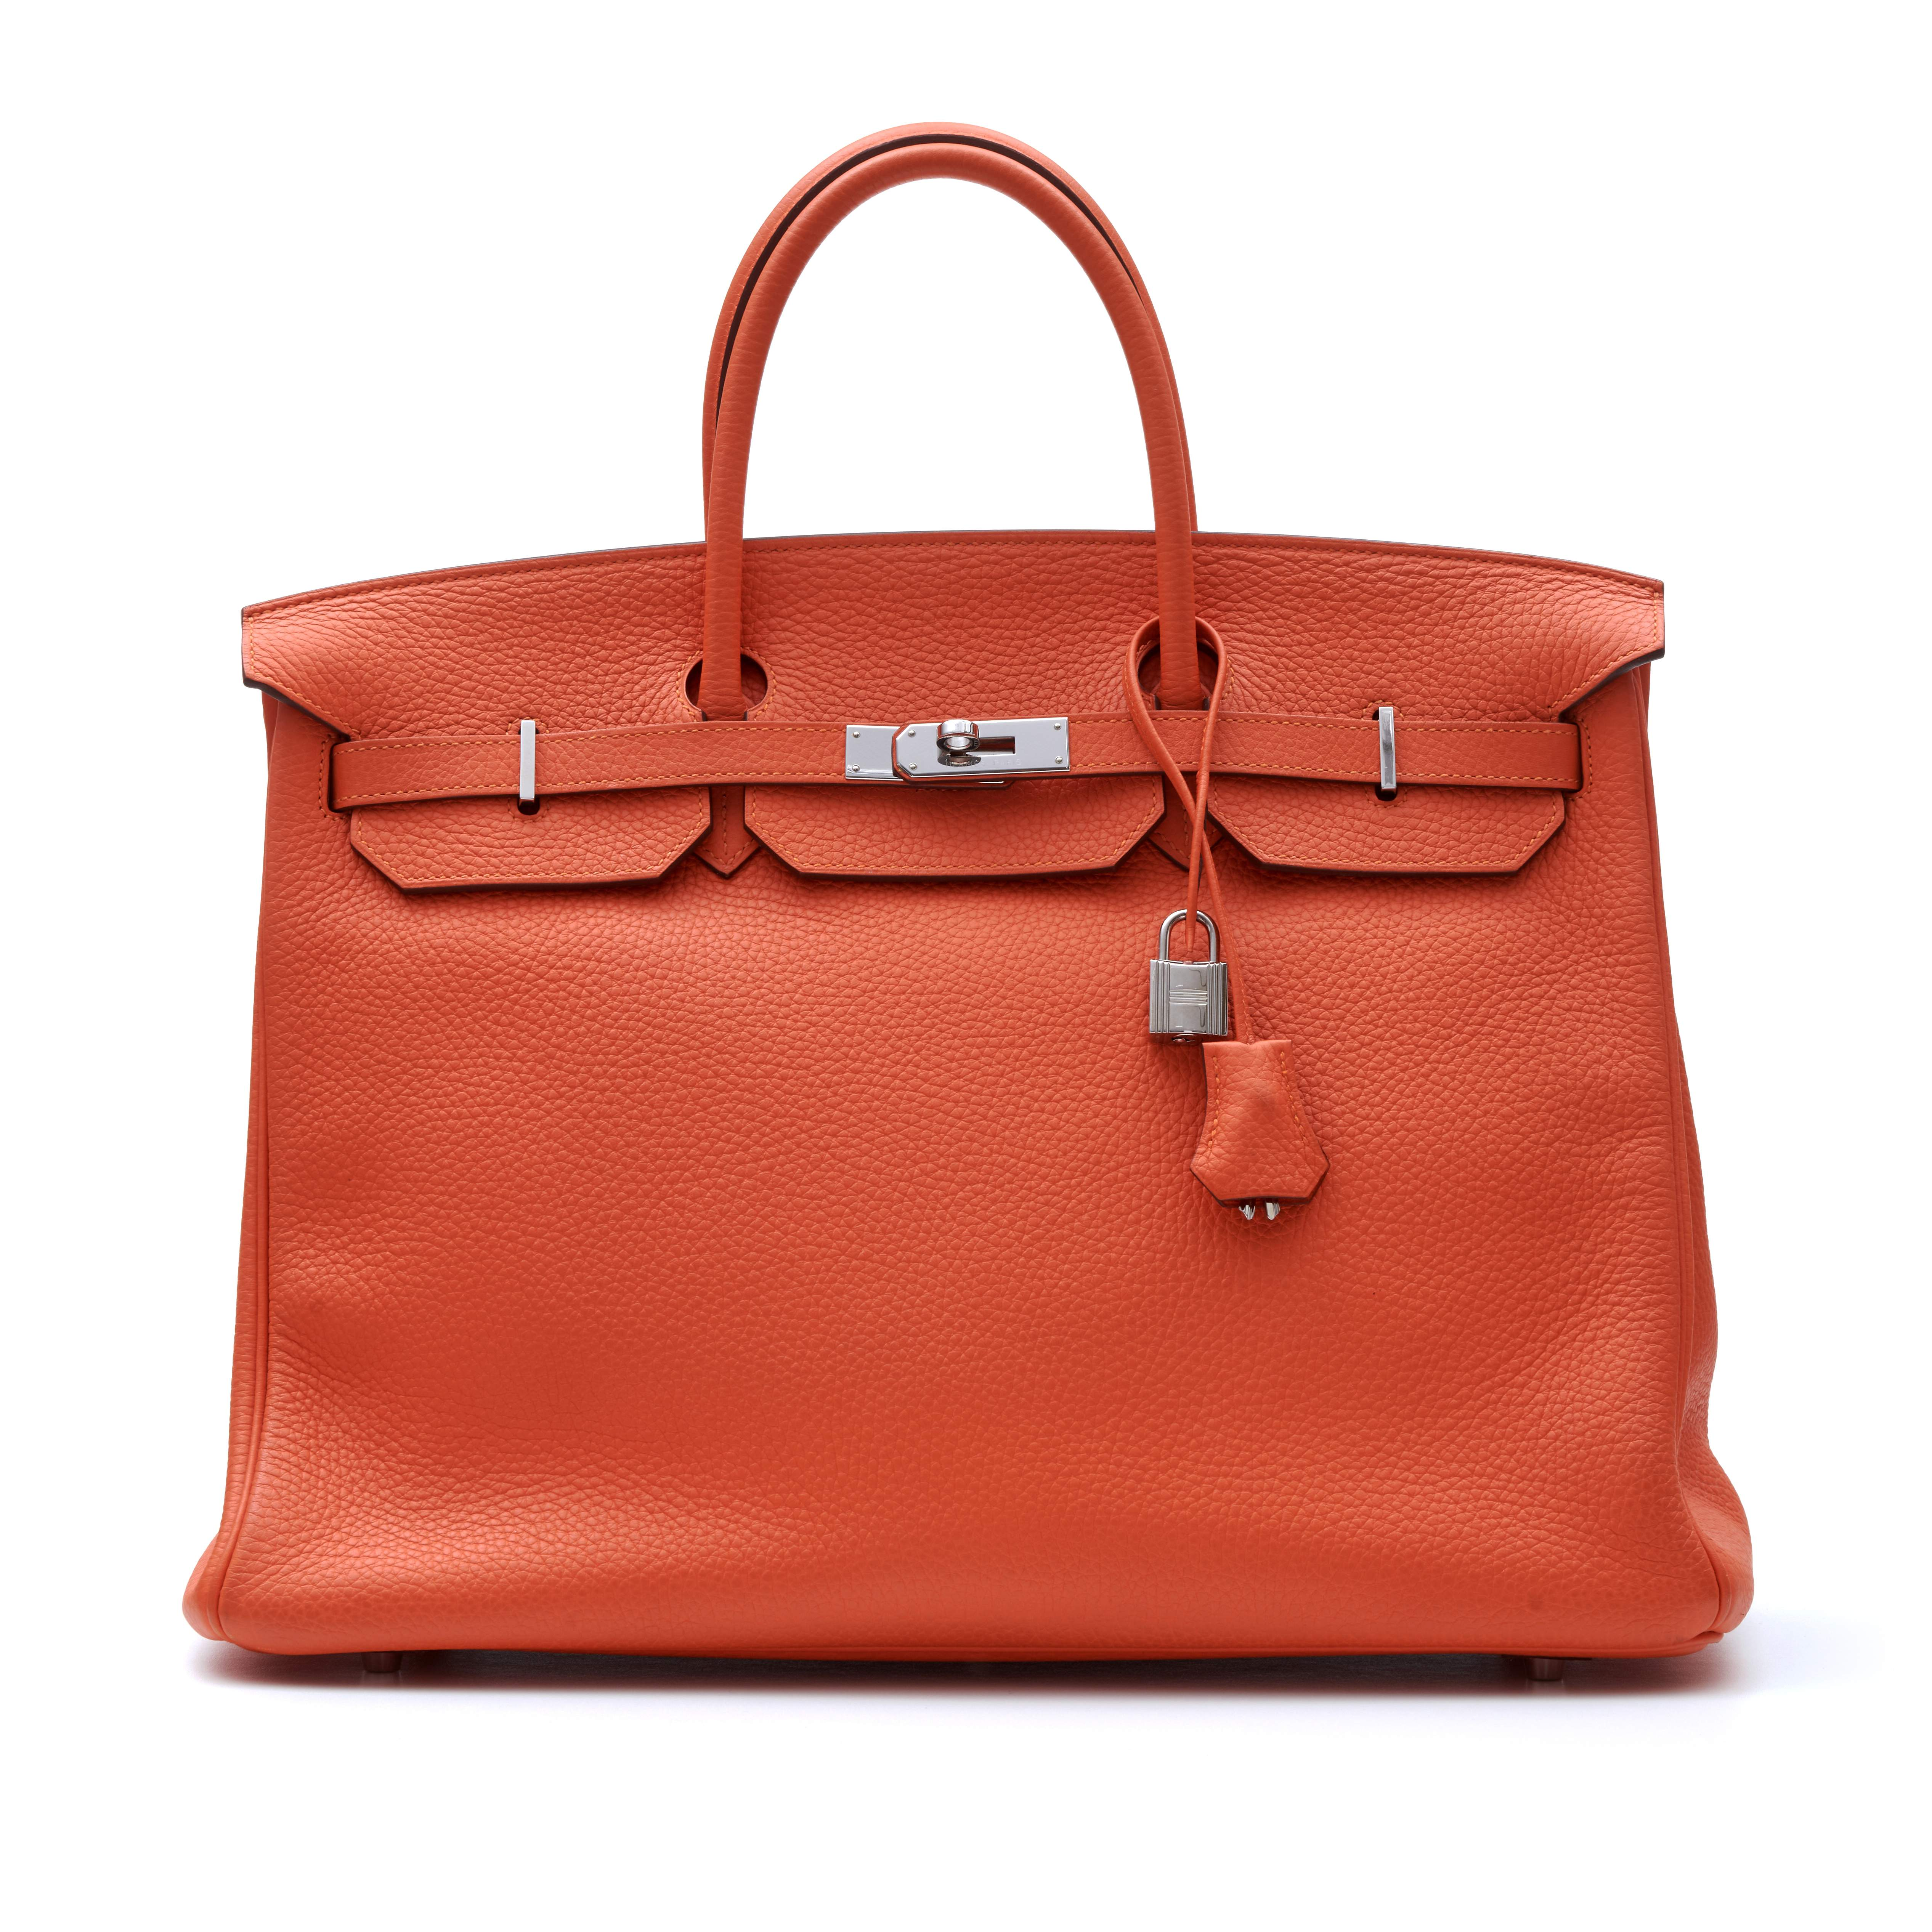 View full screen - View 1 of Lot 313. Feu Birkin 40cm in Taurillion Clemence Leather with Palladium Hardware, 2014.